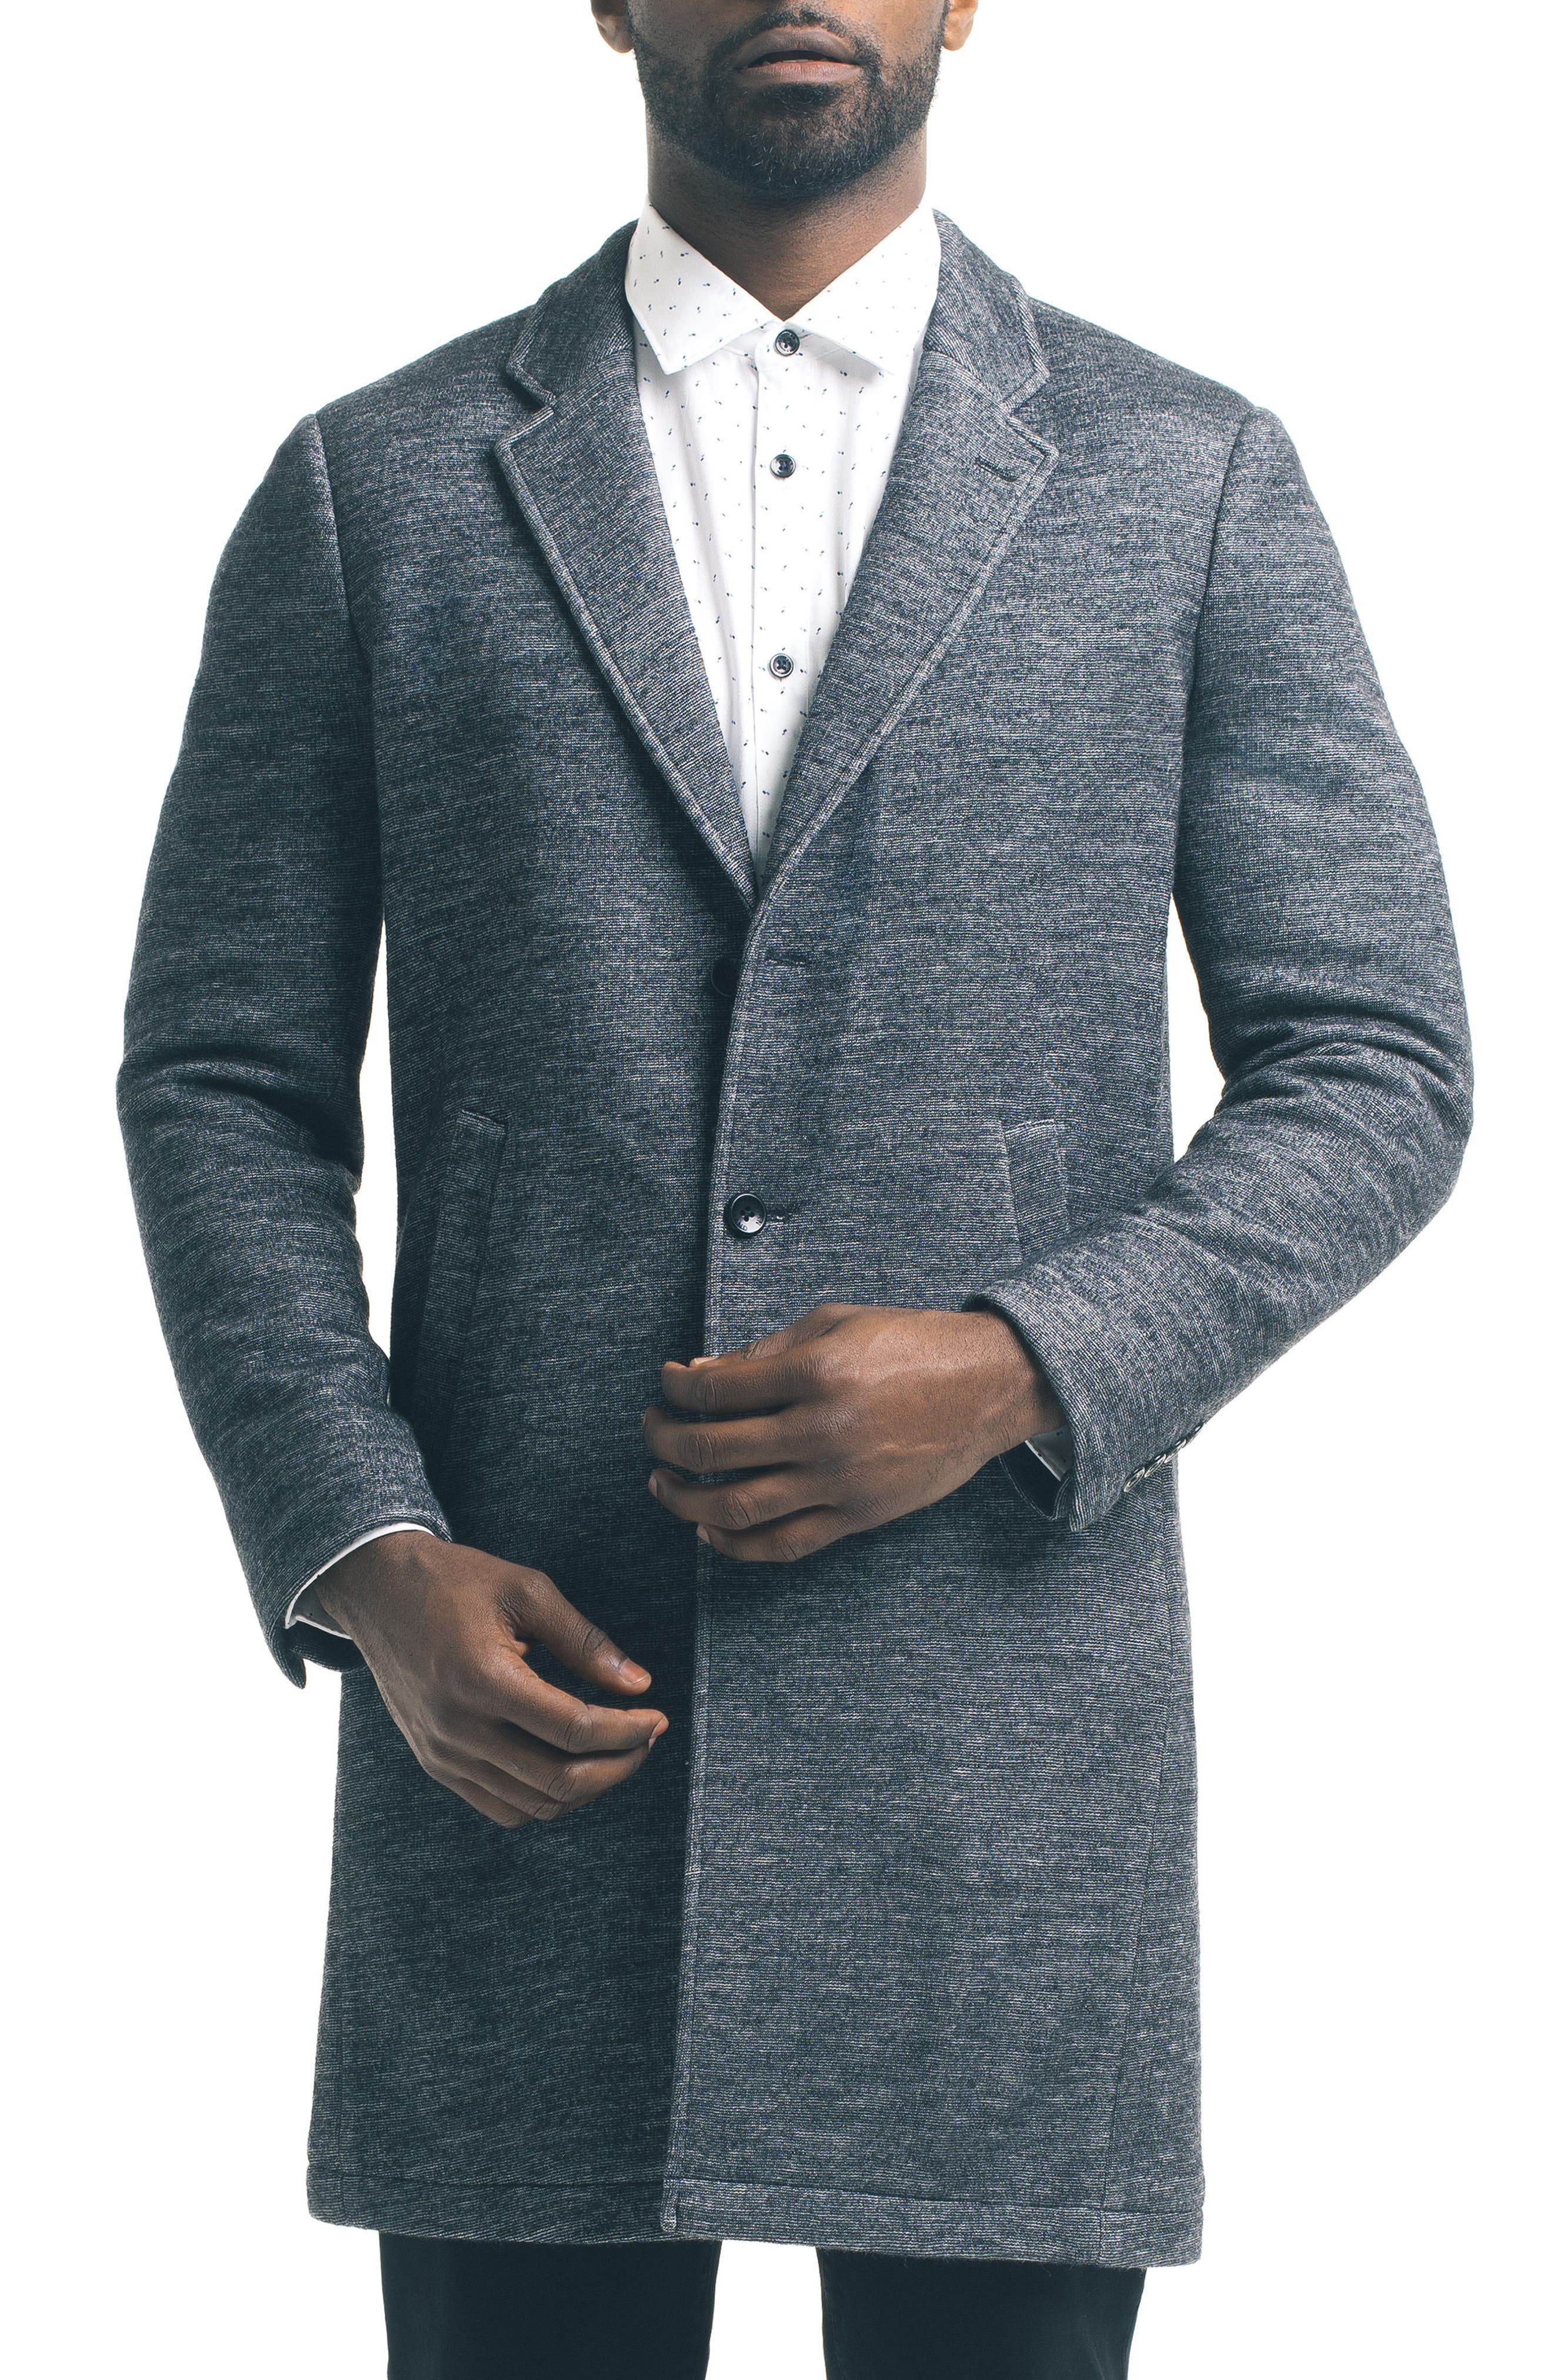 Chesterfield Slim Jacket,                             Main thumbnail 1, color,                             Charcoal